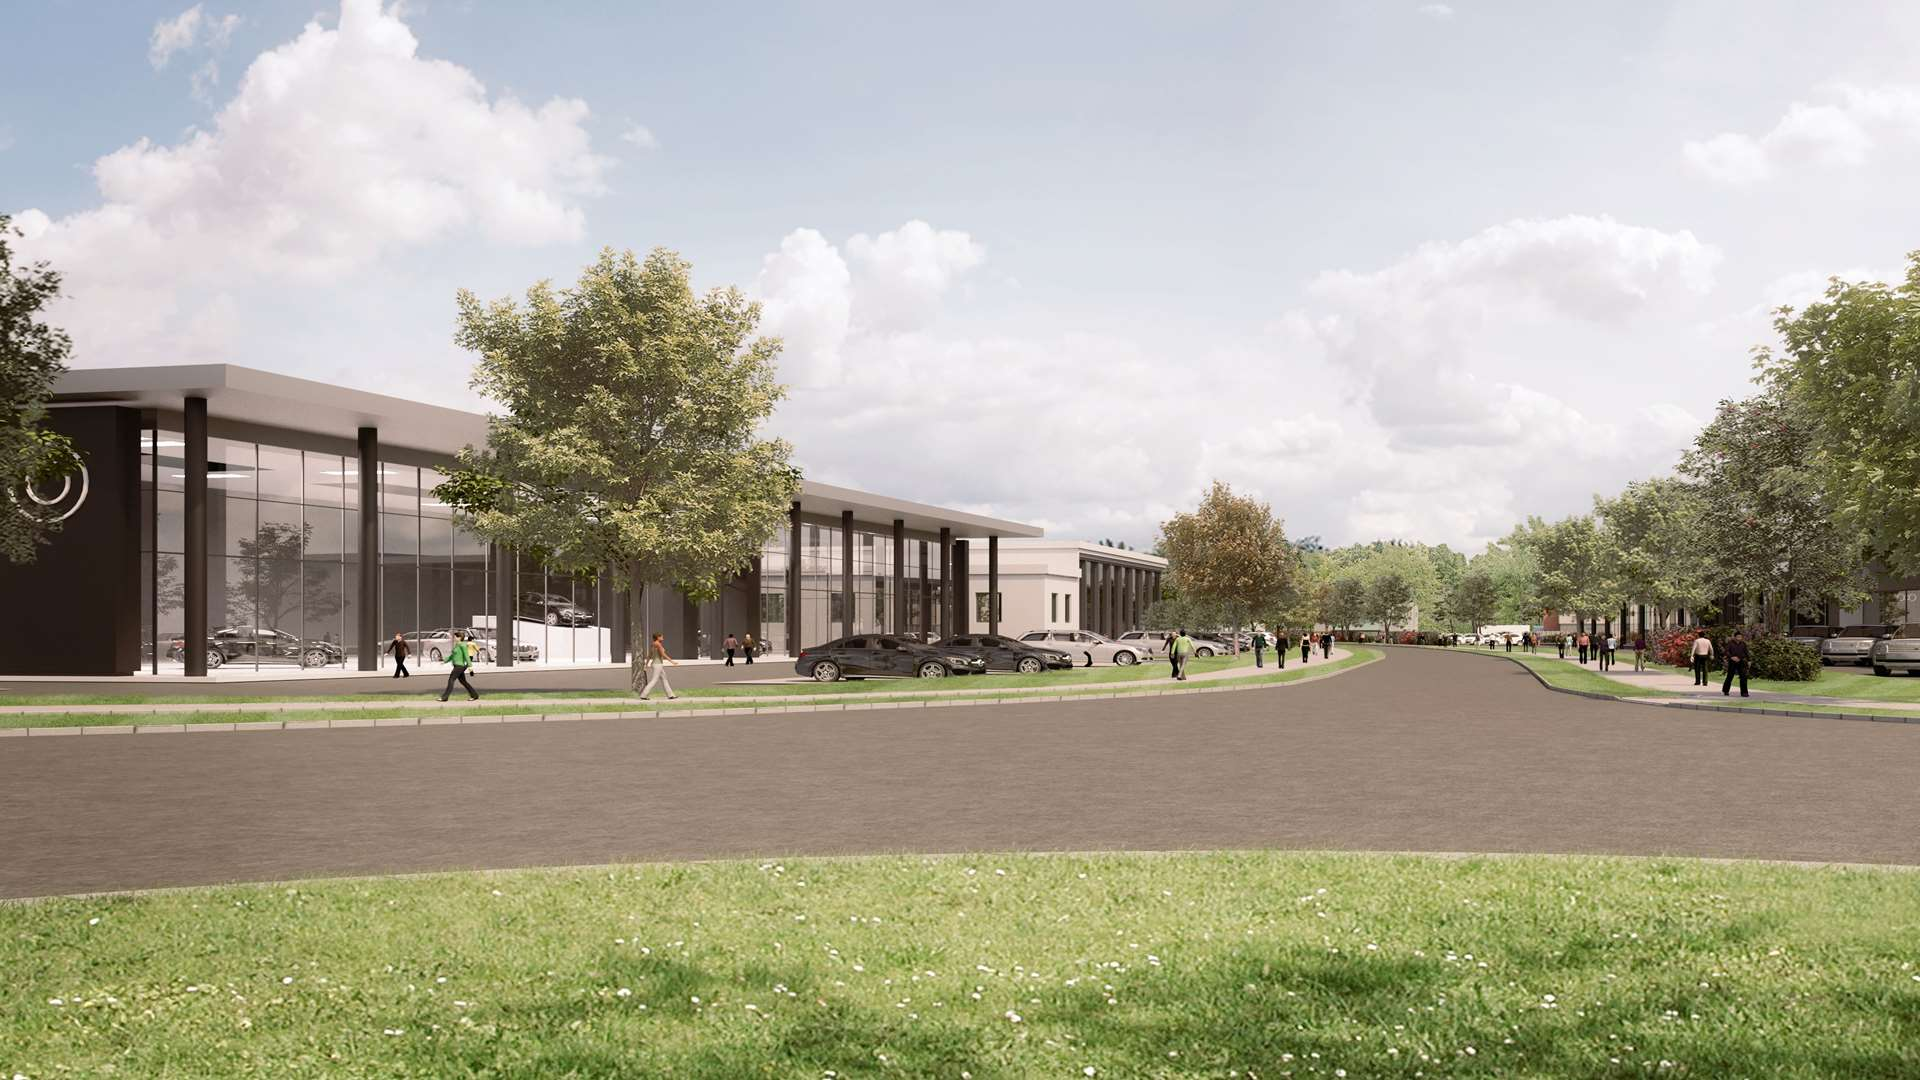 The commercial space proposed at Waterbrook Park